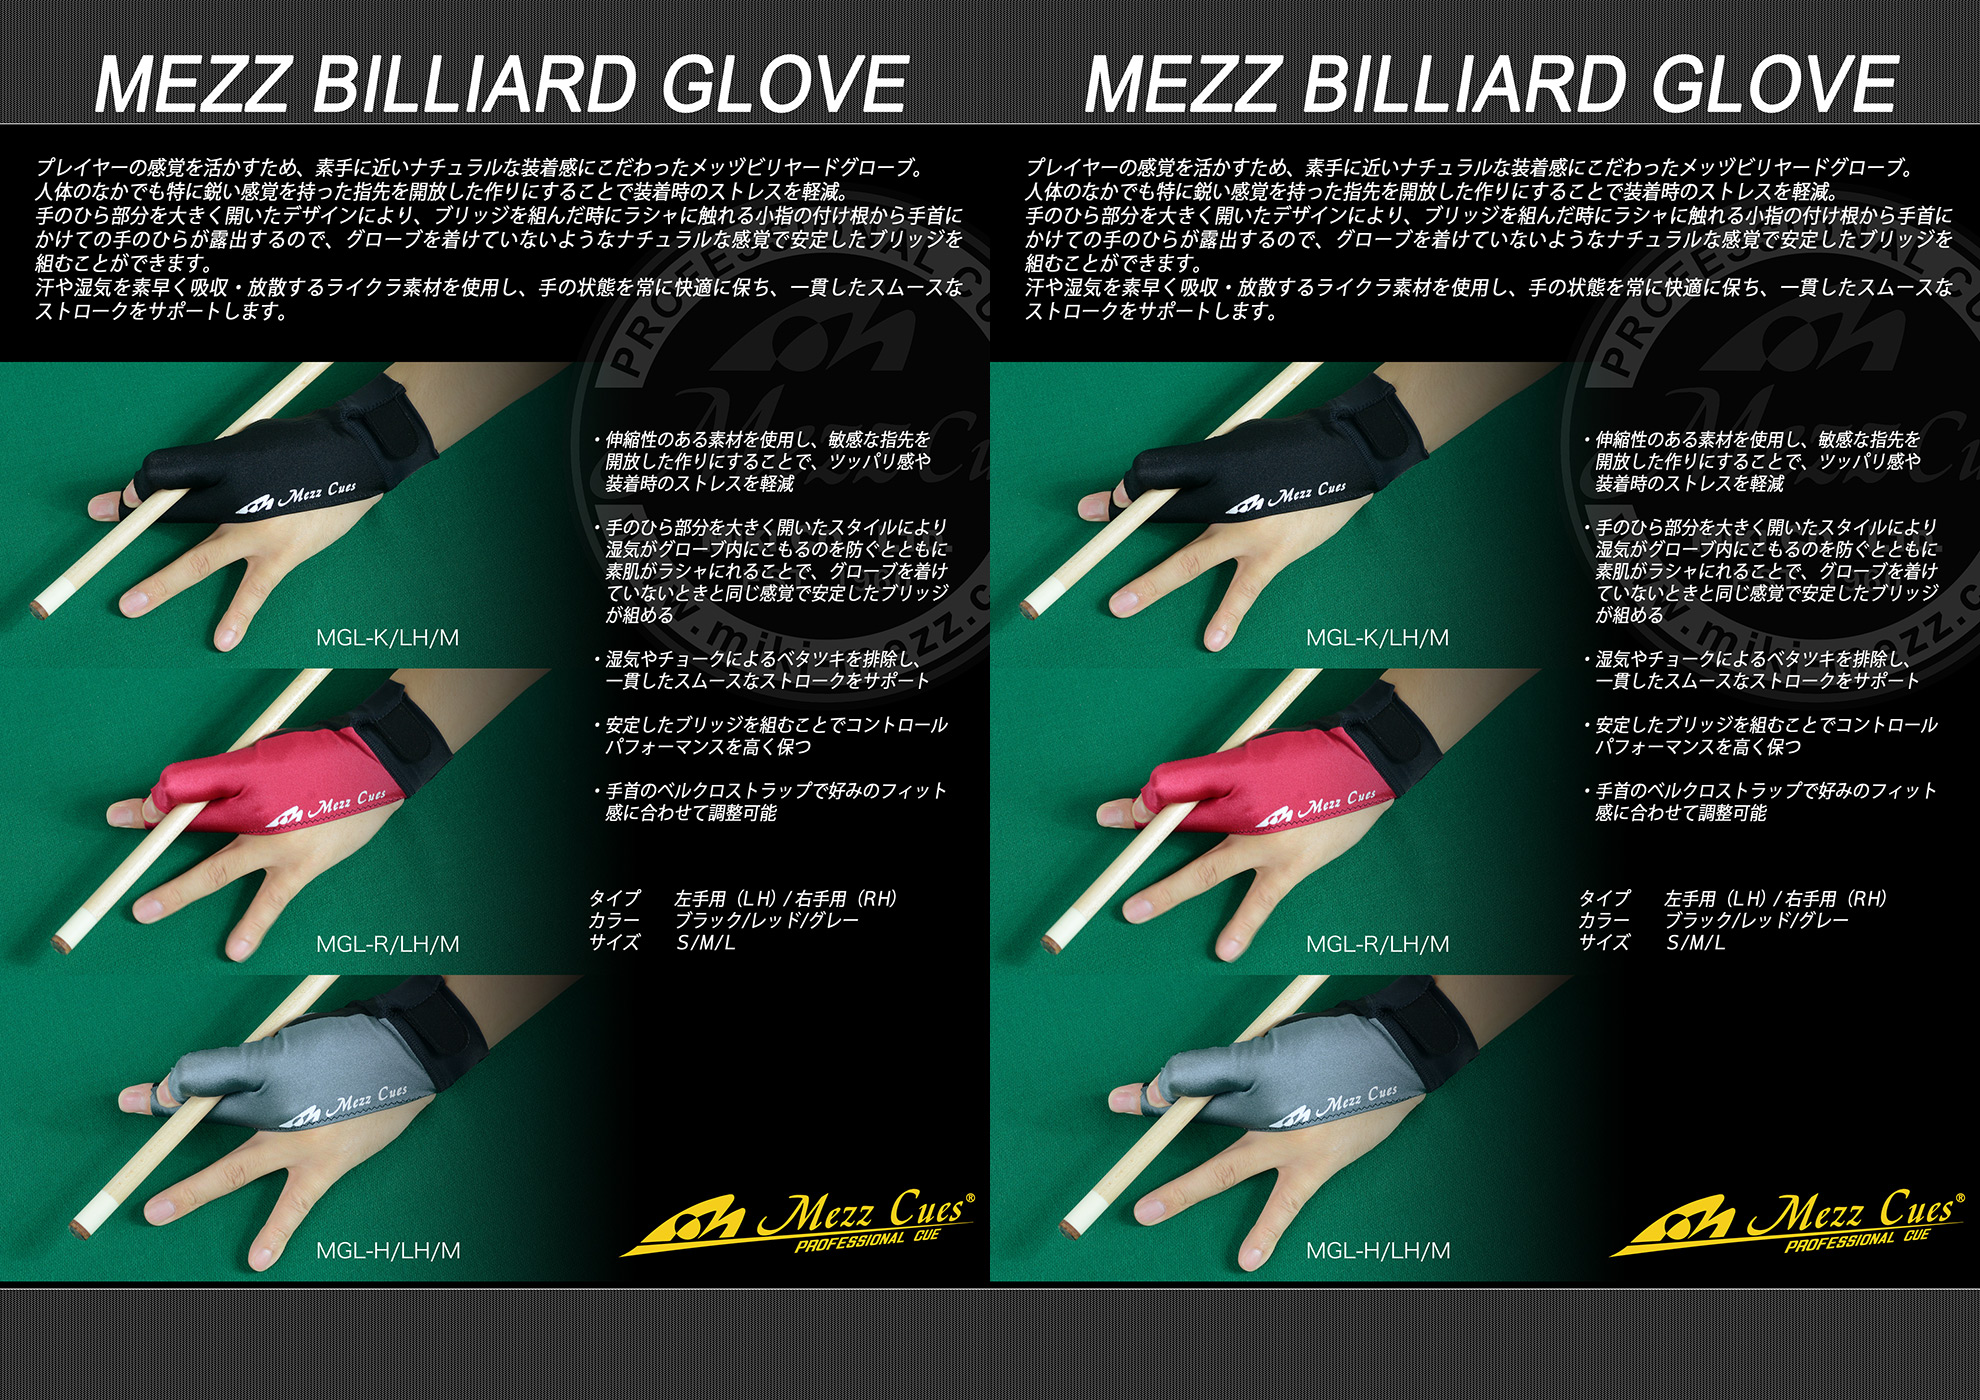 mezz-billiard-glove